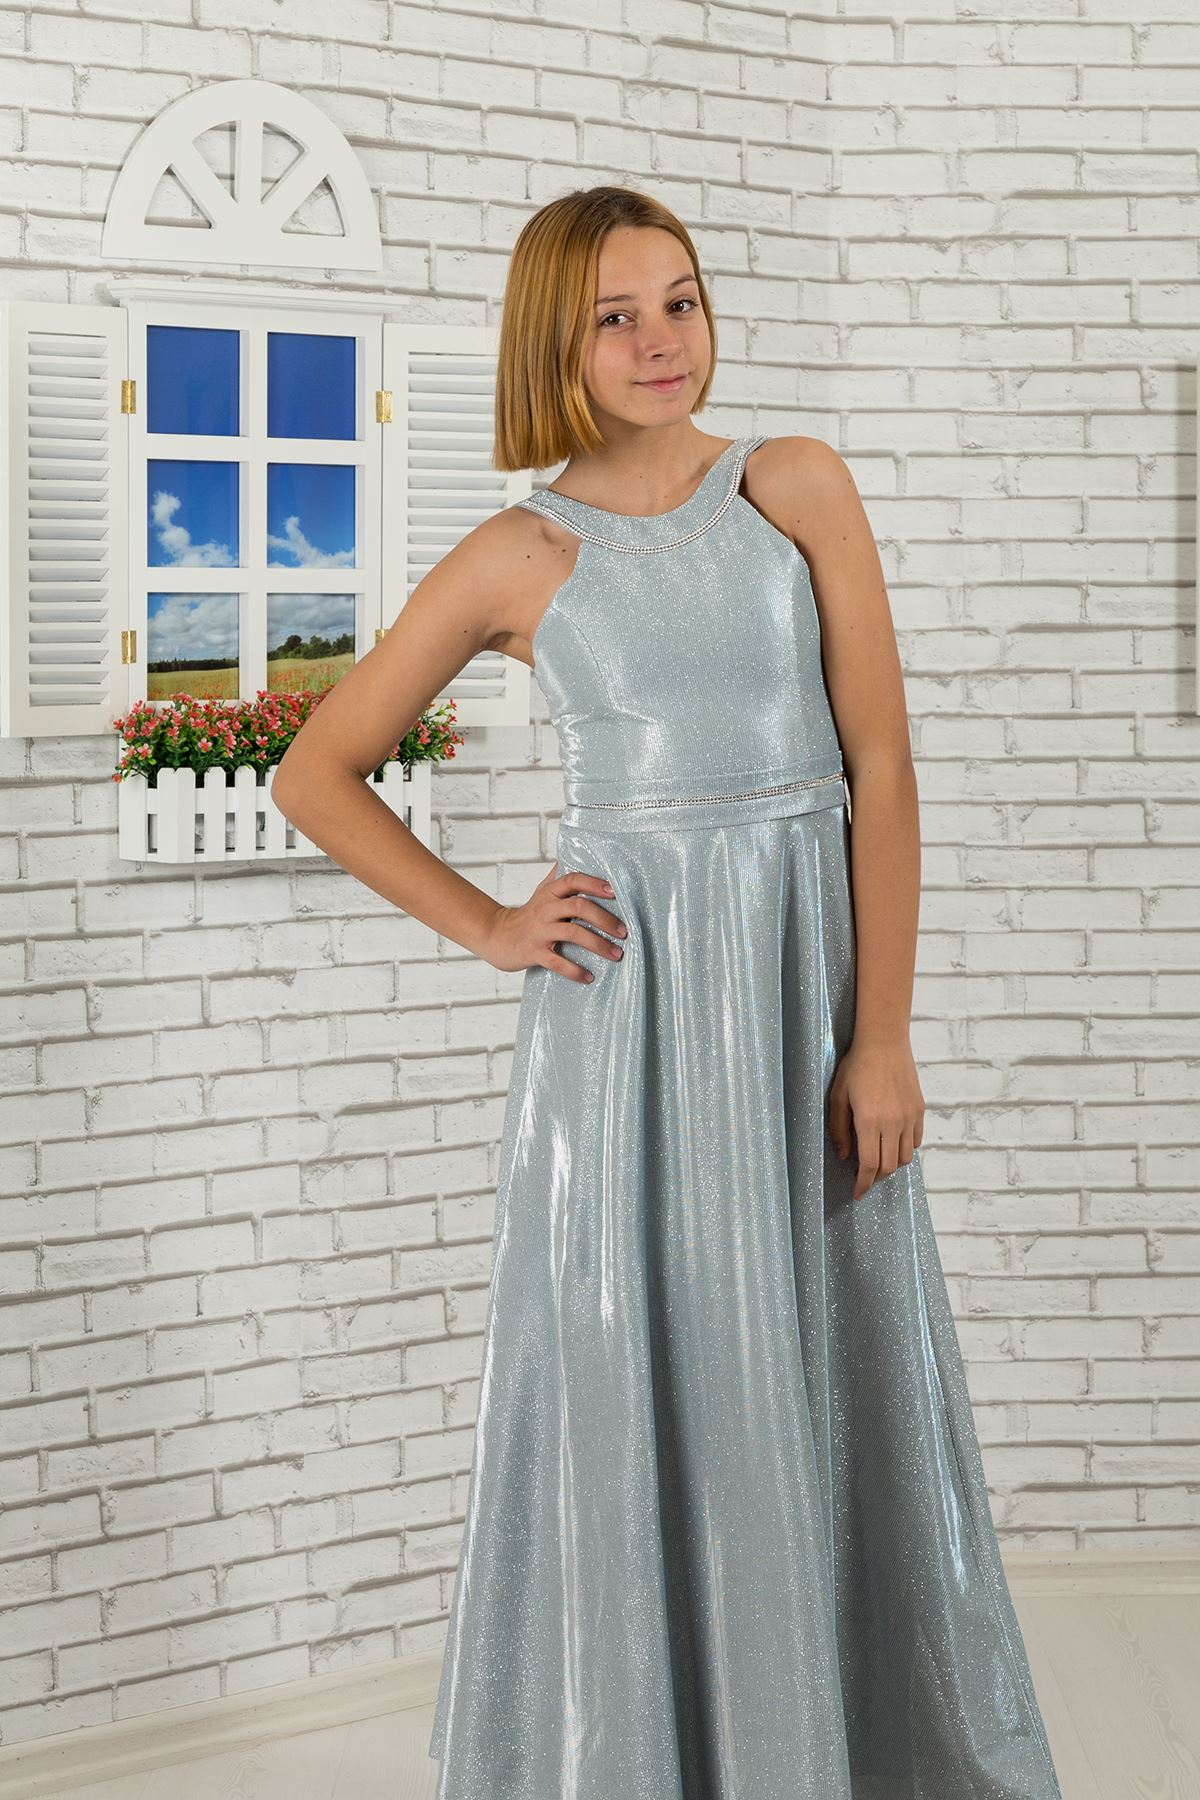 Waist and neck Stone detailed, silvery fabric girl children evening dress 480 Grey